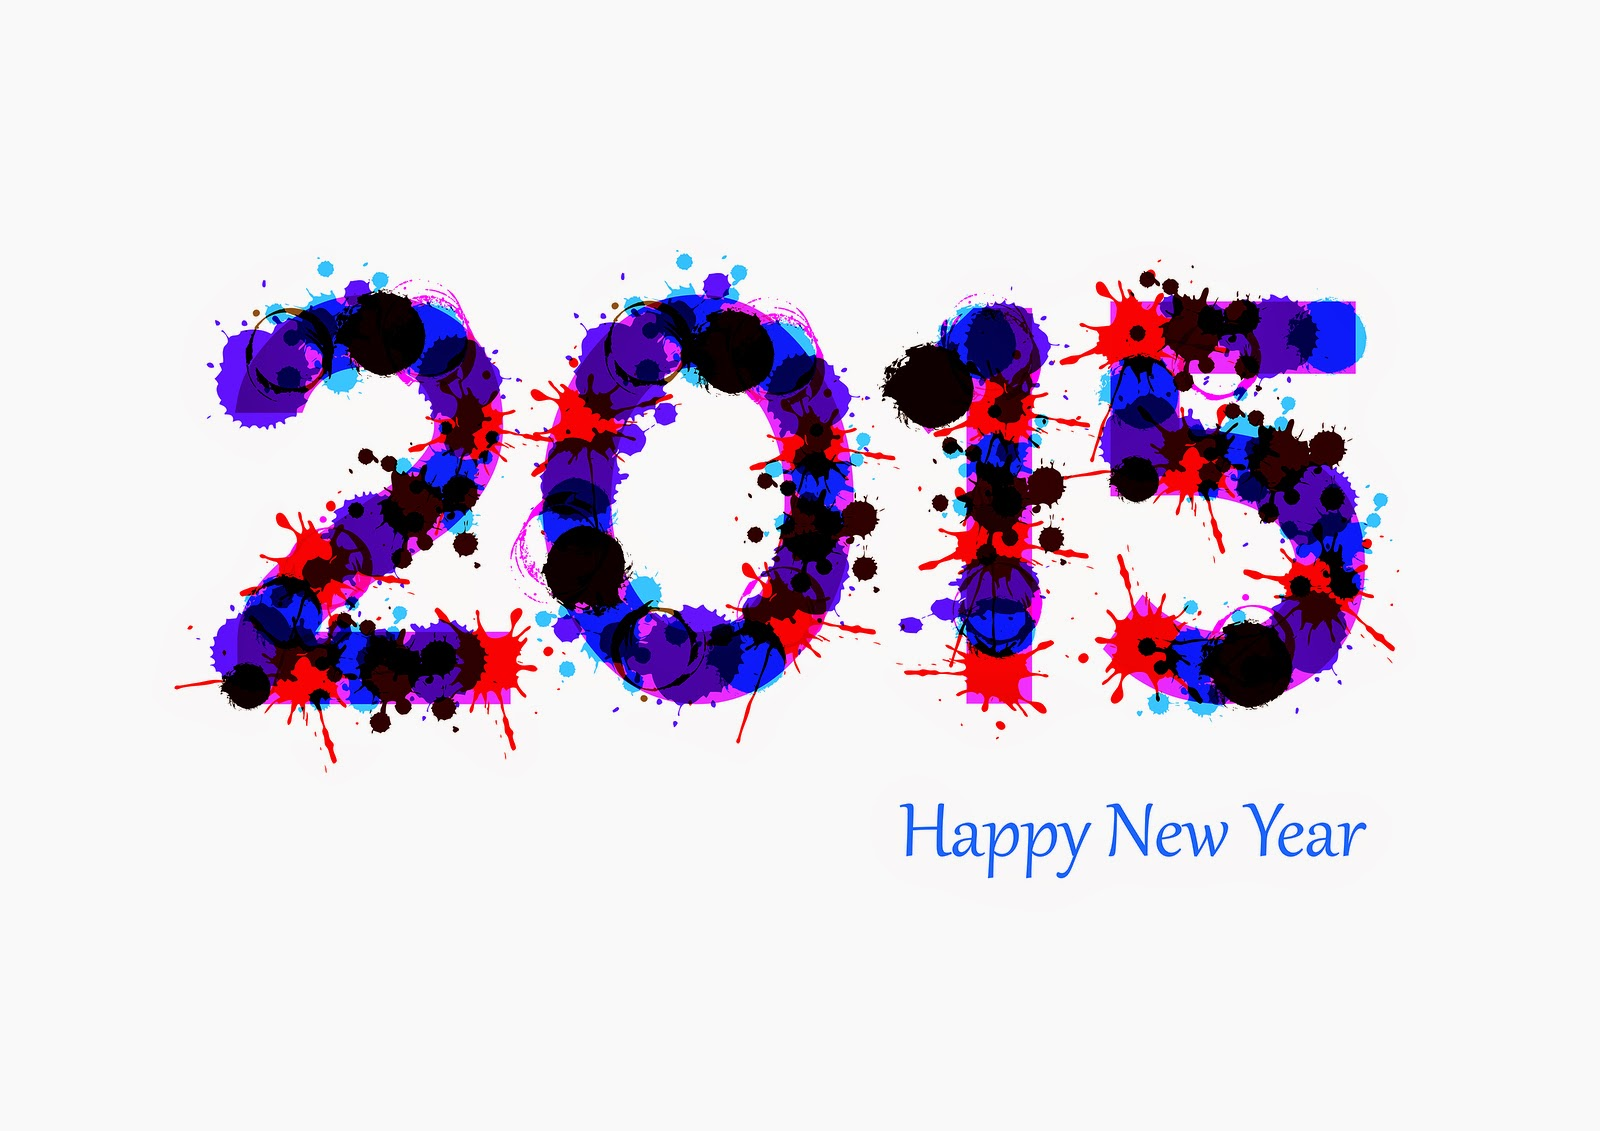 new years eve clipart 2015 - photo #13